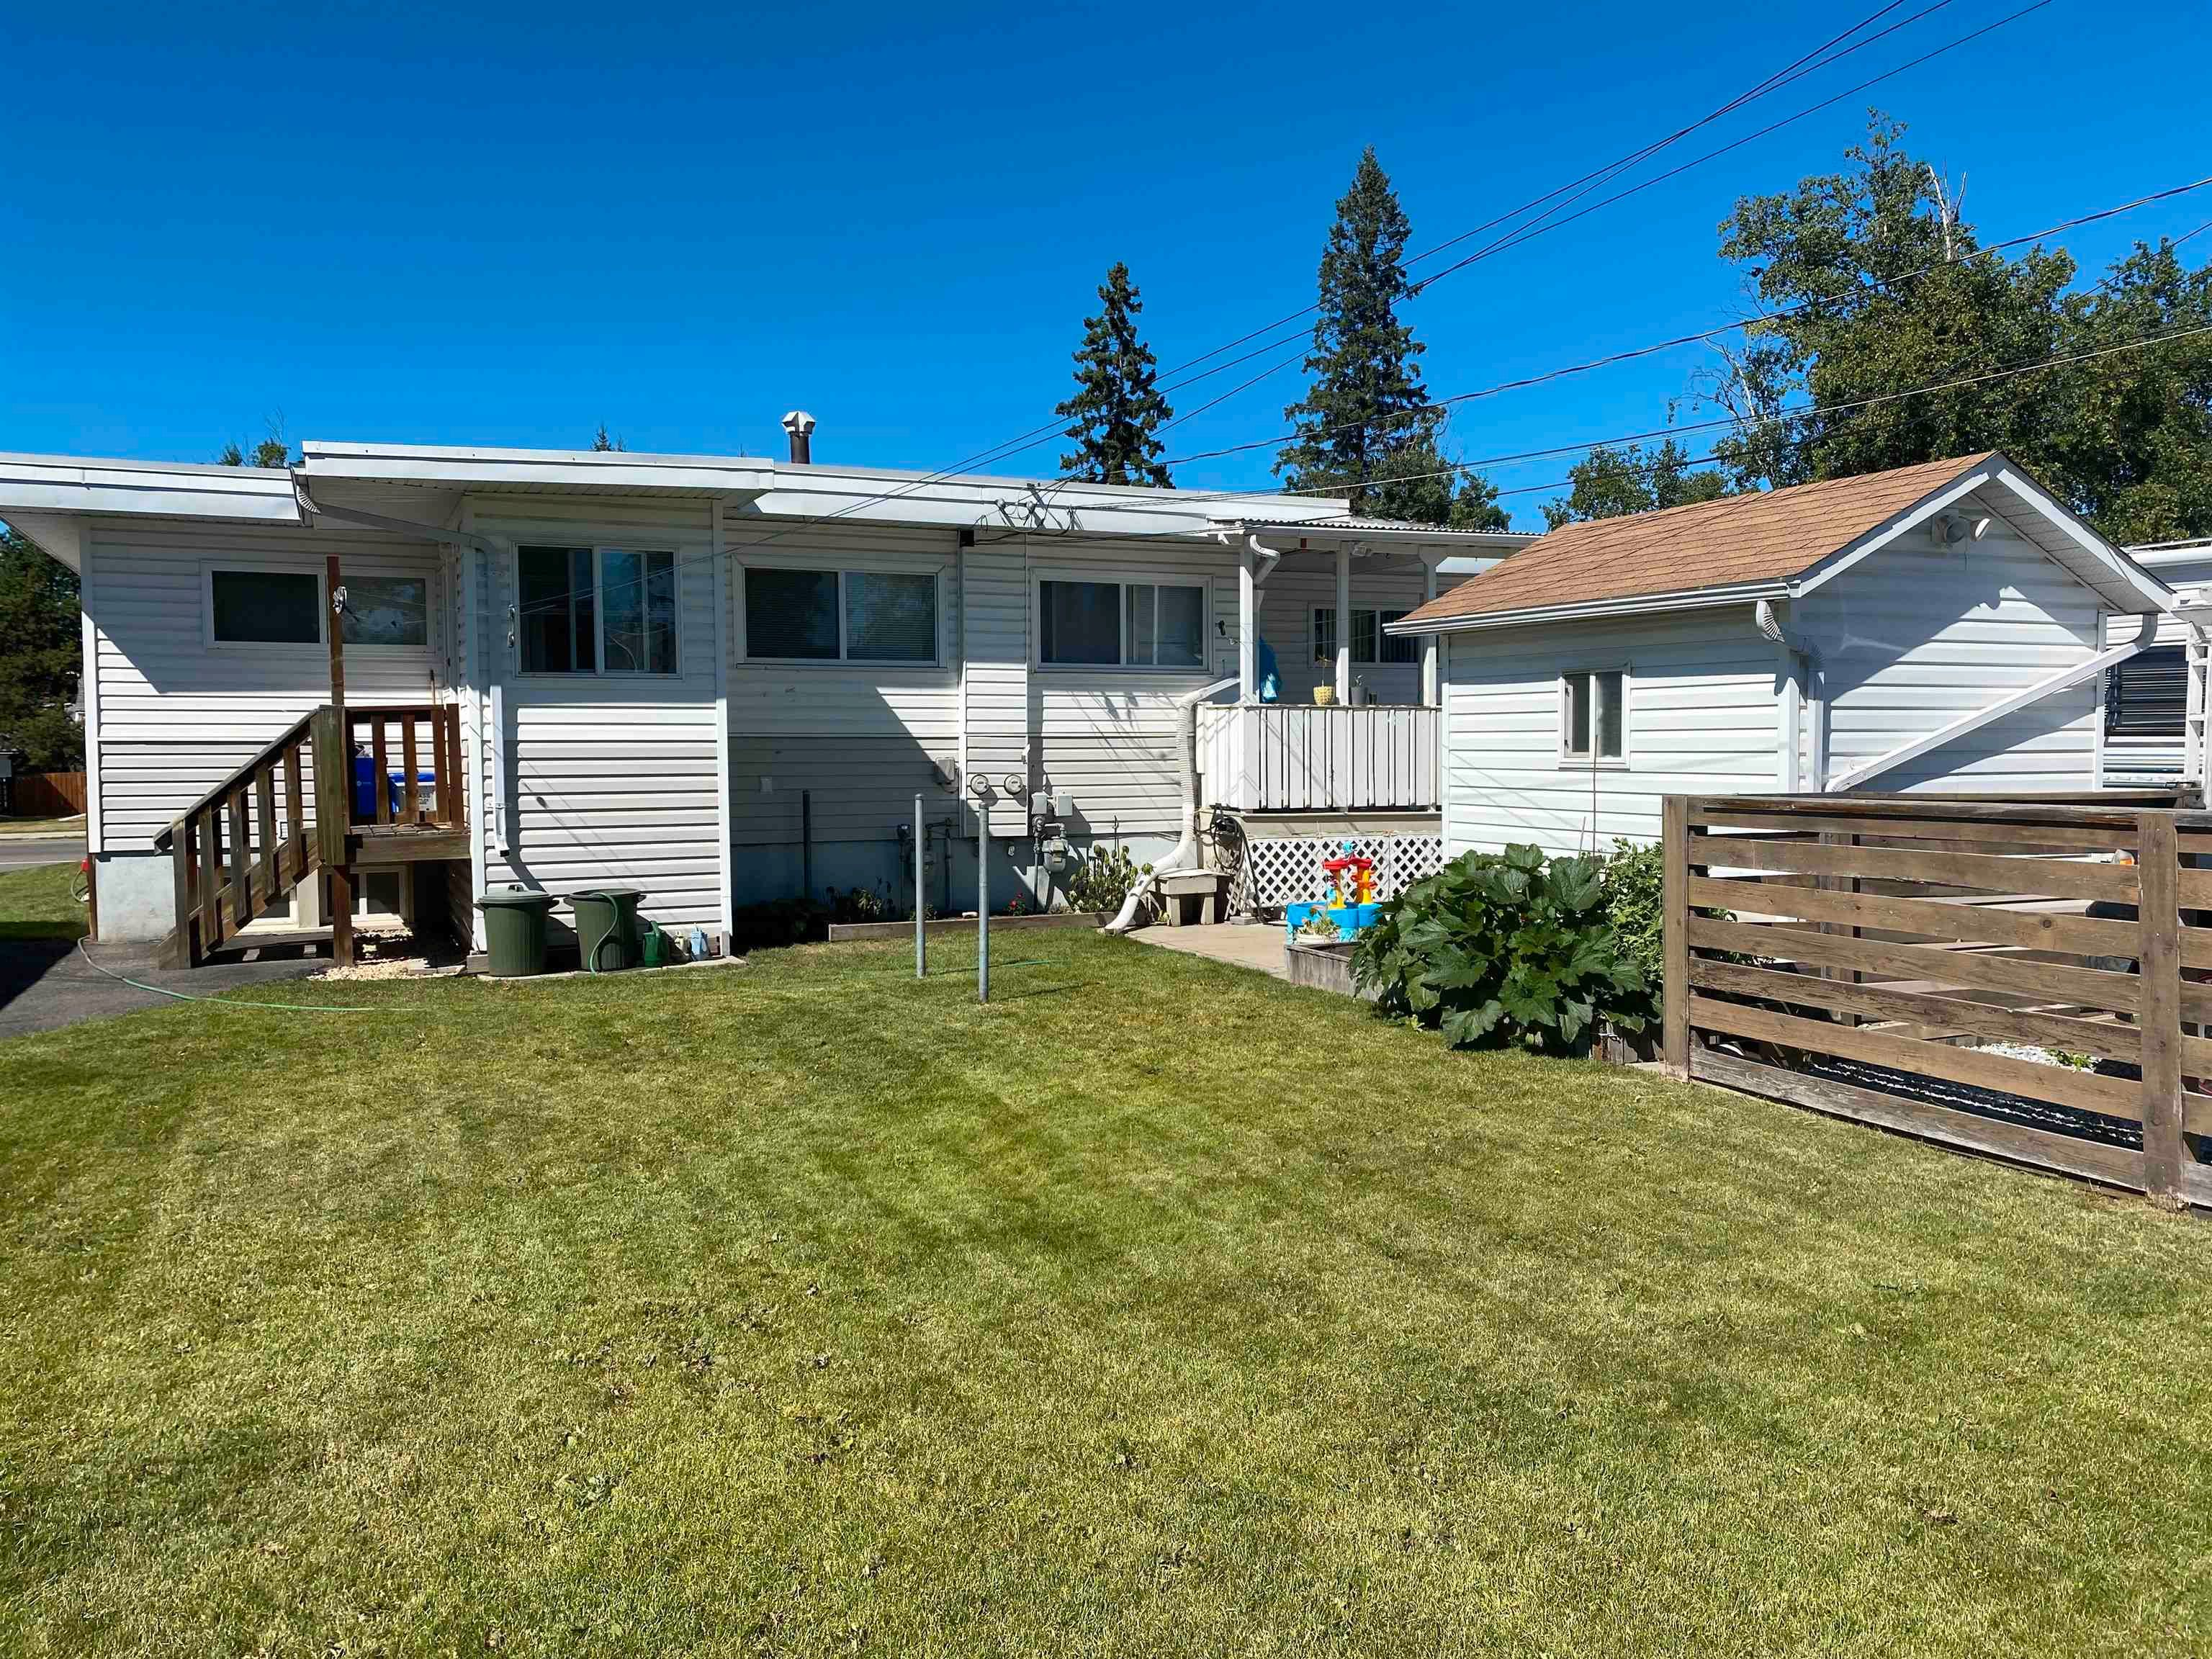 Photo 2: Photos: 346 - 352 CARNEY Street in Prince George: Central Duplex for sale (PG City Central (Zone 72))  : MLS®# R2609479